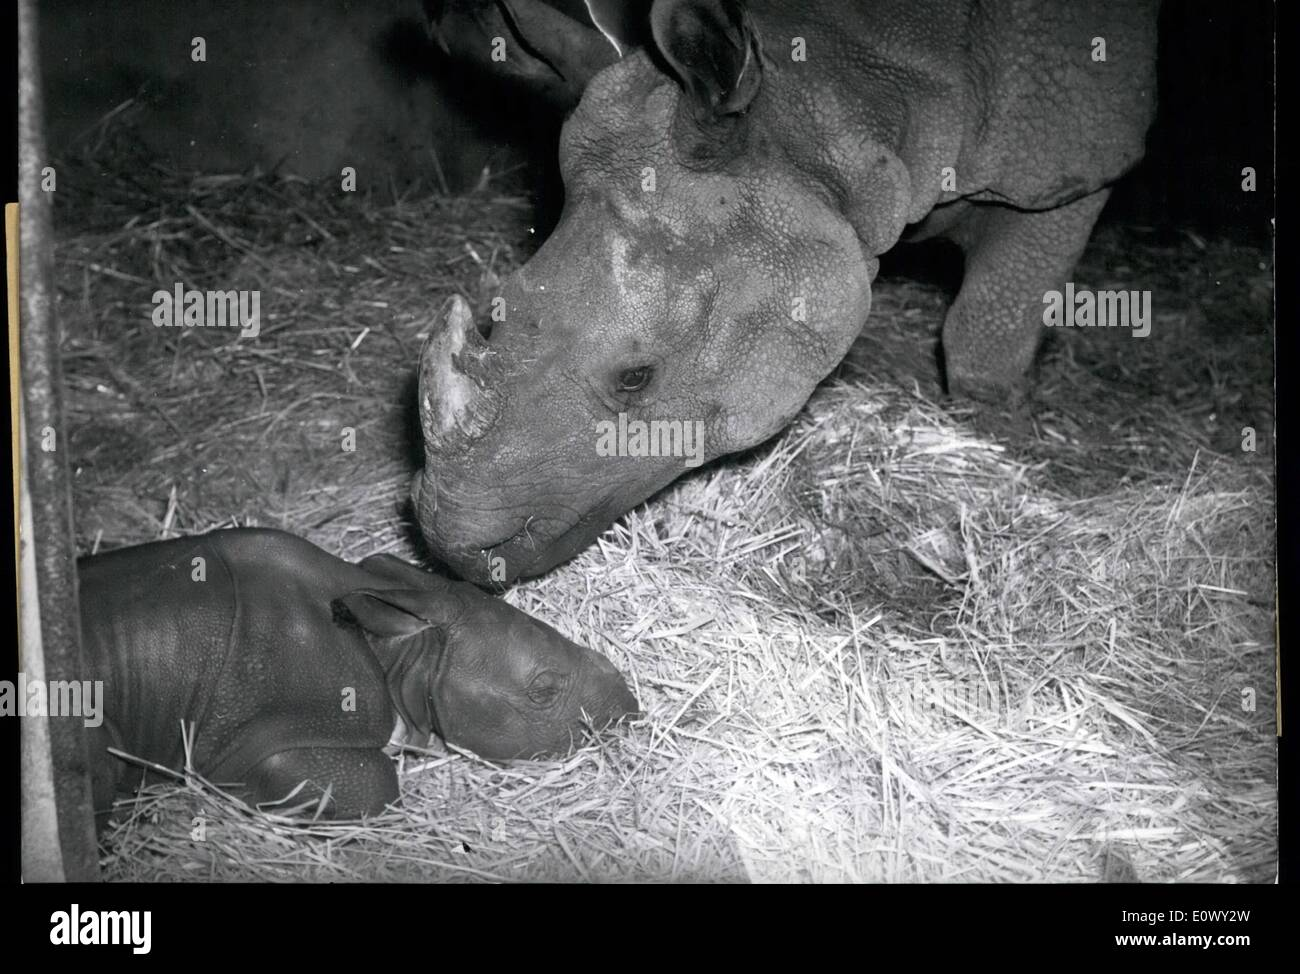 Aug. 08, 1964 - A birth weight of 50 kg had the little rinoceros which was born these days in the zoo of Hagenbeck at Hamburg, Germany. It happened for the first time that in a German zoo an Indian rinoceros was born. Zoo experts are already estimating the value of ''Gauhati'' (gahati), this is the name given to the baby rinoceris, of 70 000 DM. - Stock Image